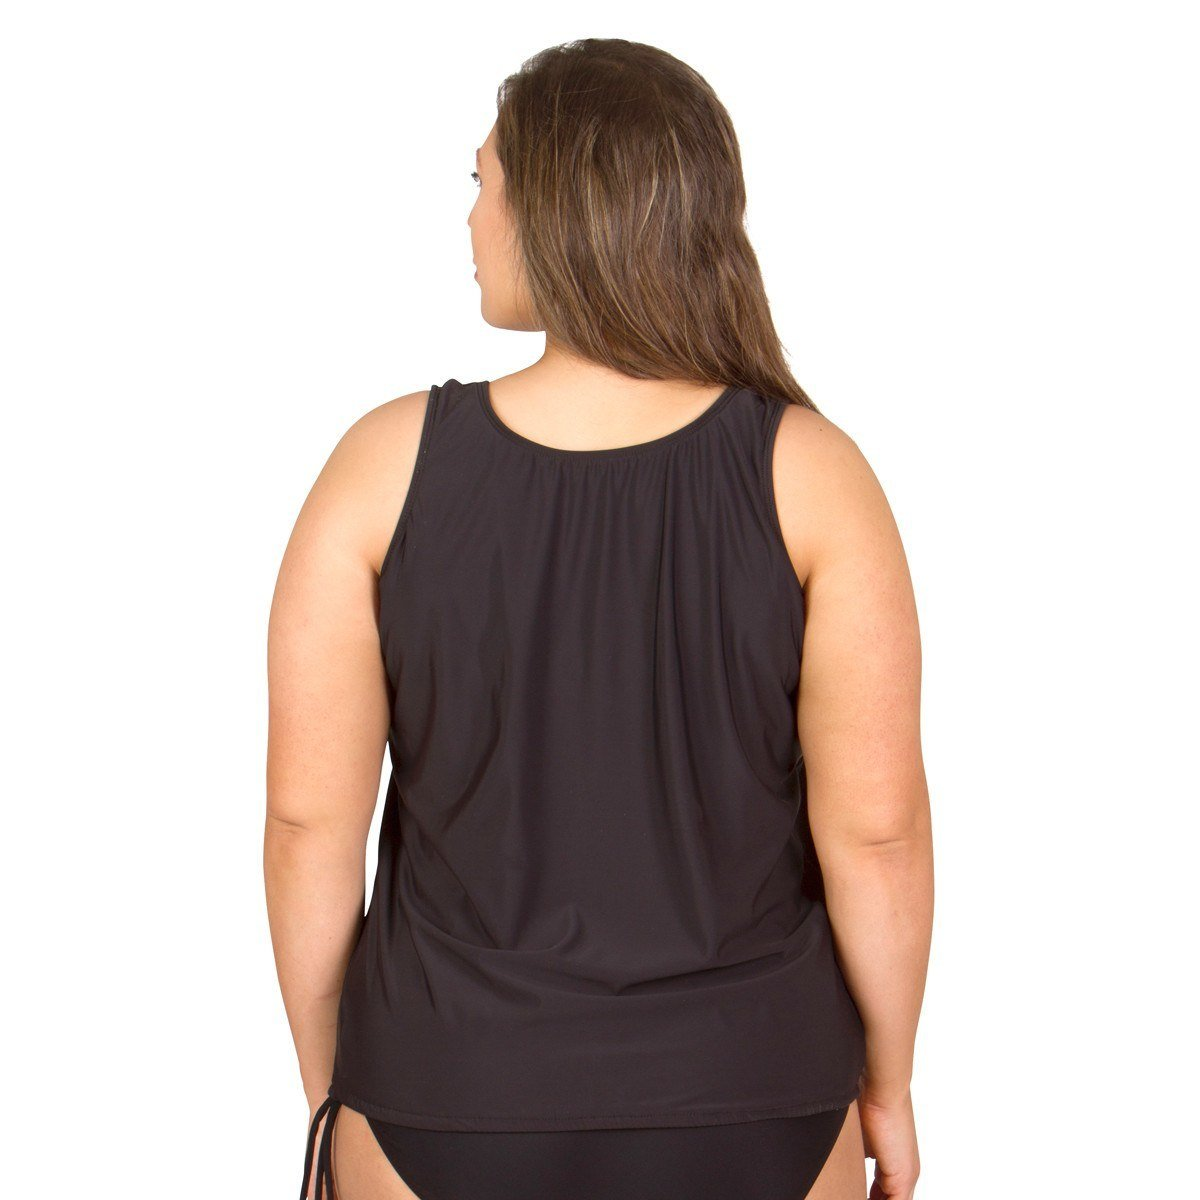 7195dec8f5c Swimsuits Just For Us Plus Size Swim Tops - Wear Your Own Bra at Amazon  Women's Clothing store: